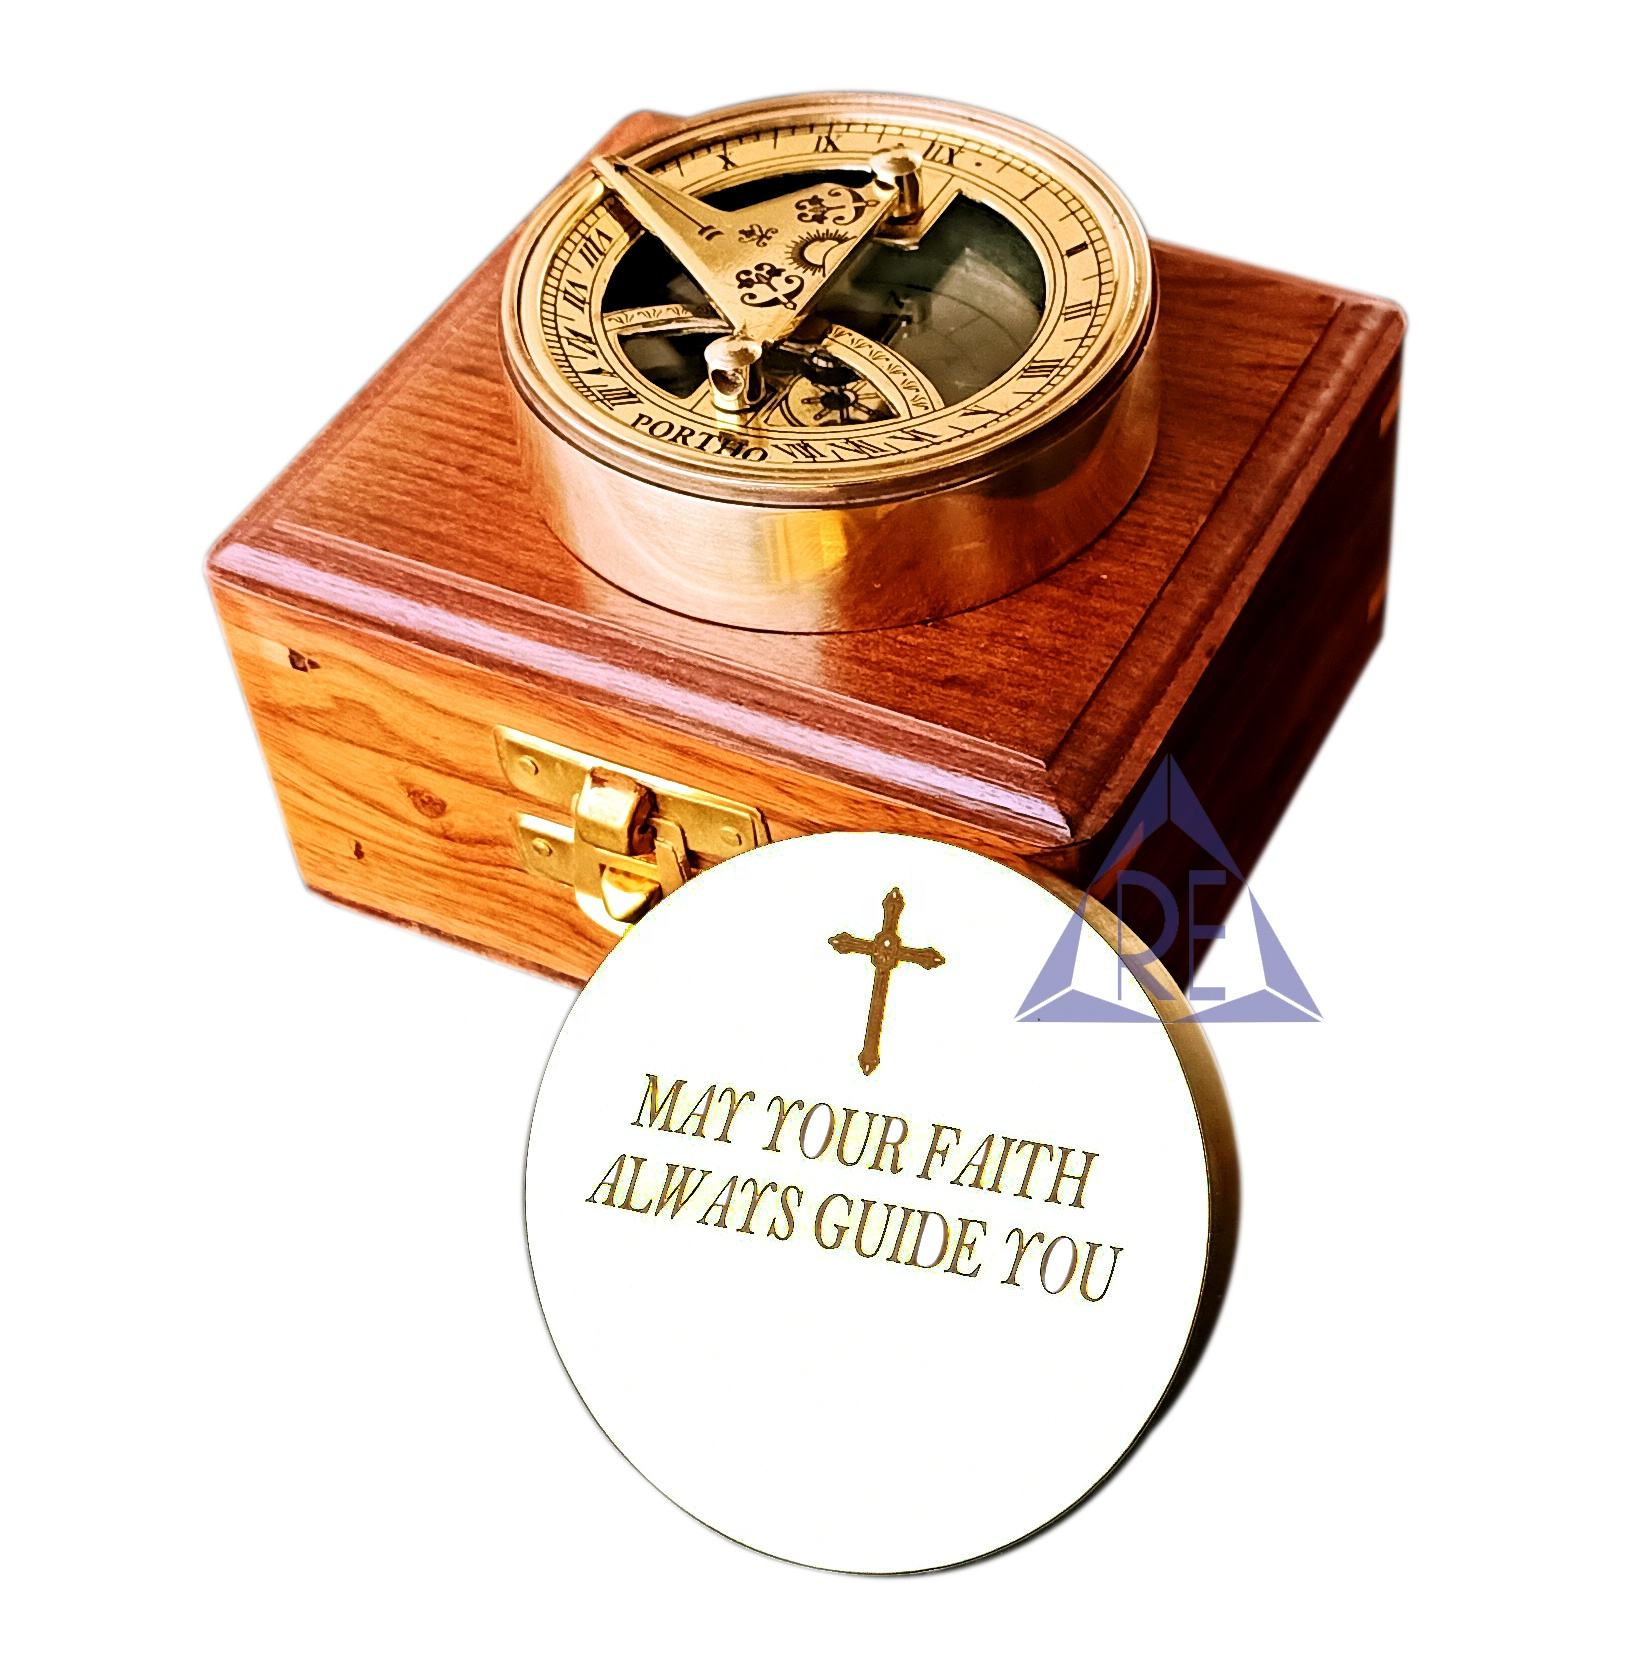 Nautical Brass Sundial Compass Vintage Engrave Compass With Wood Box Office Decor